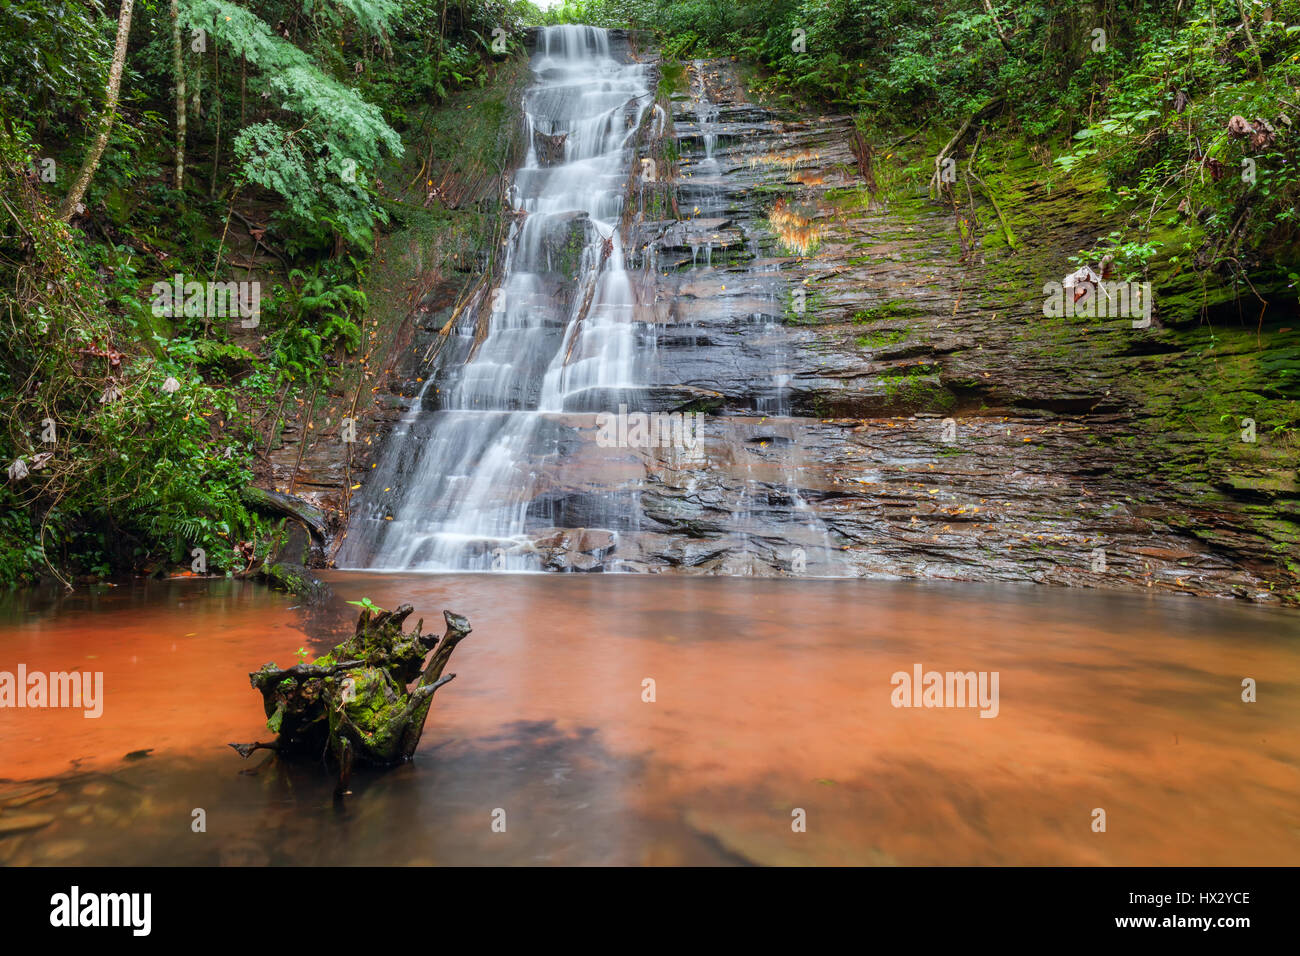 Cascades, beautiful waterfall in a rainforest. Bolivia. Long exposure. Stock photo Stock Photo